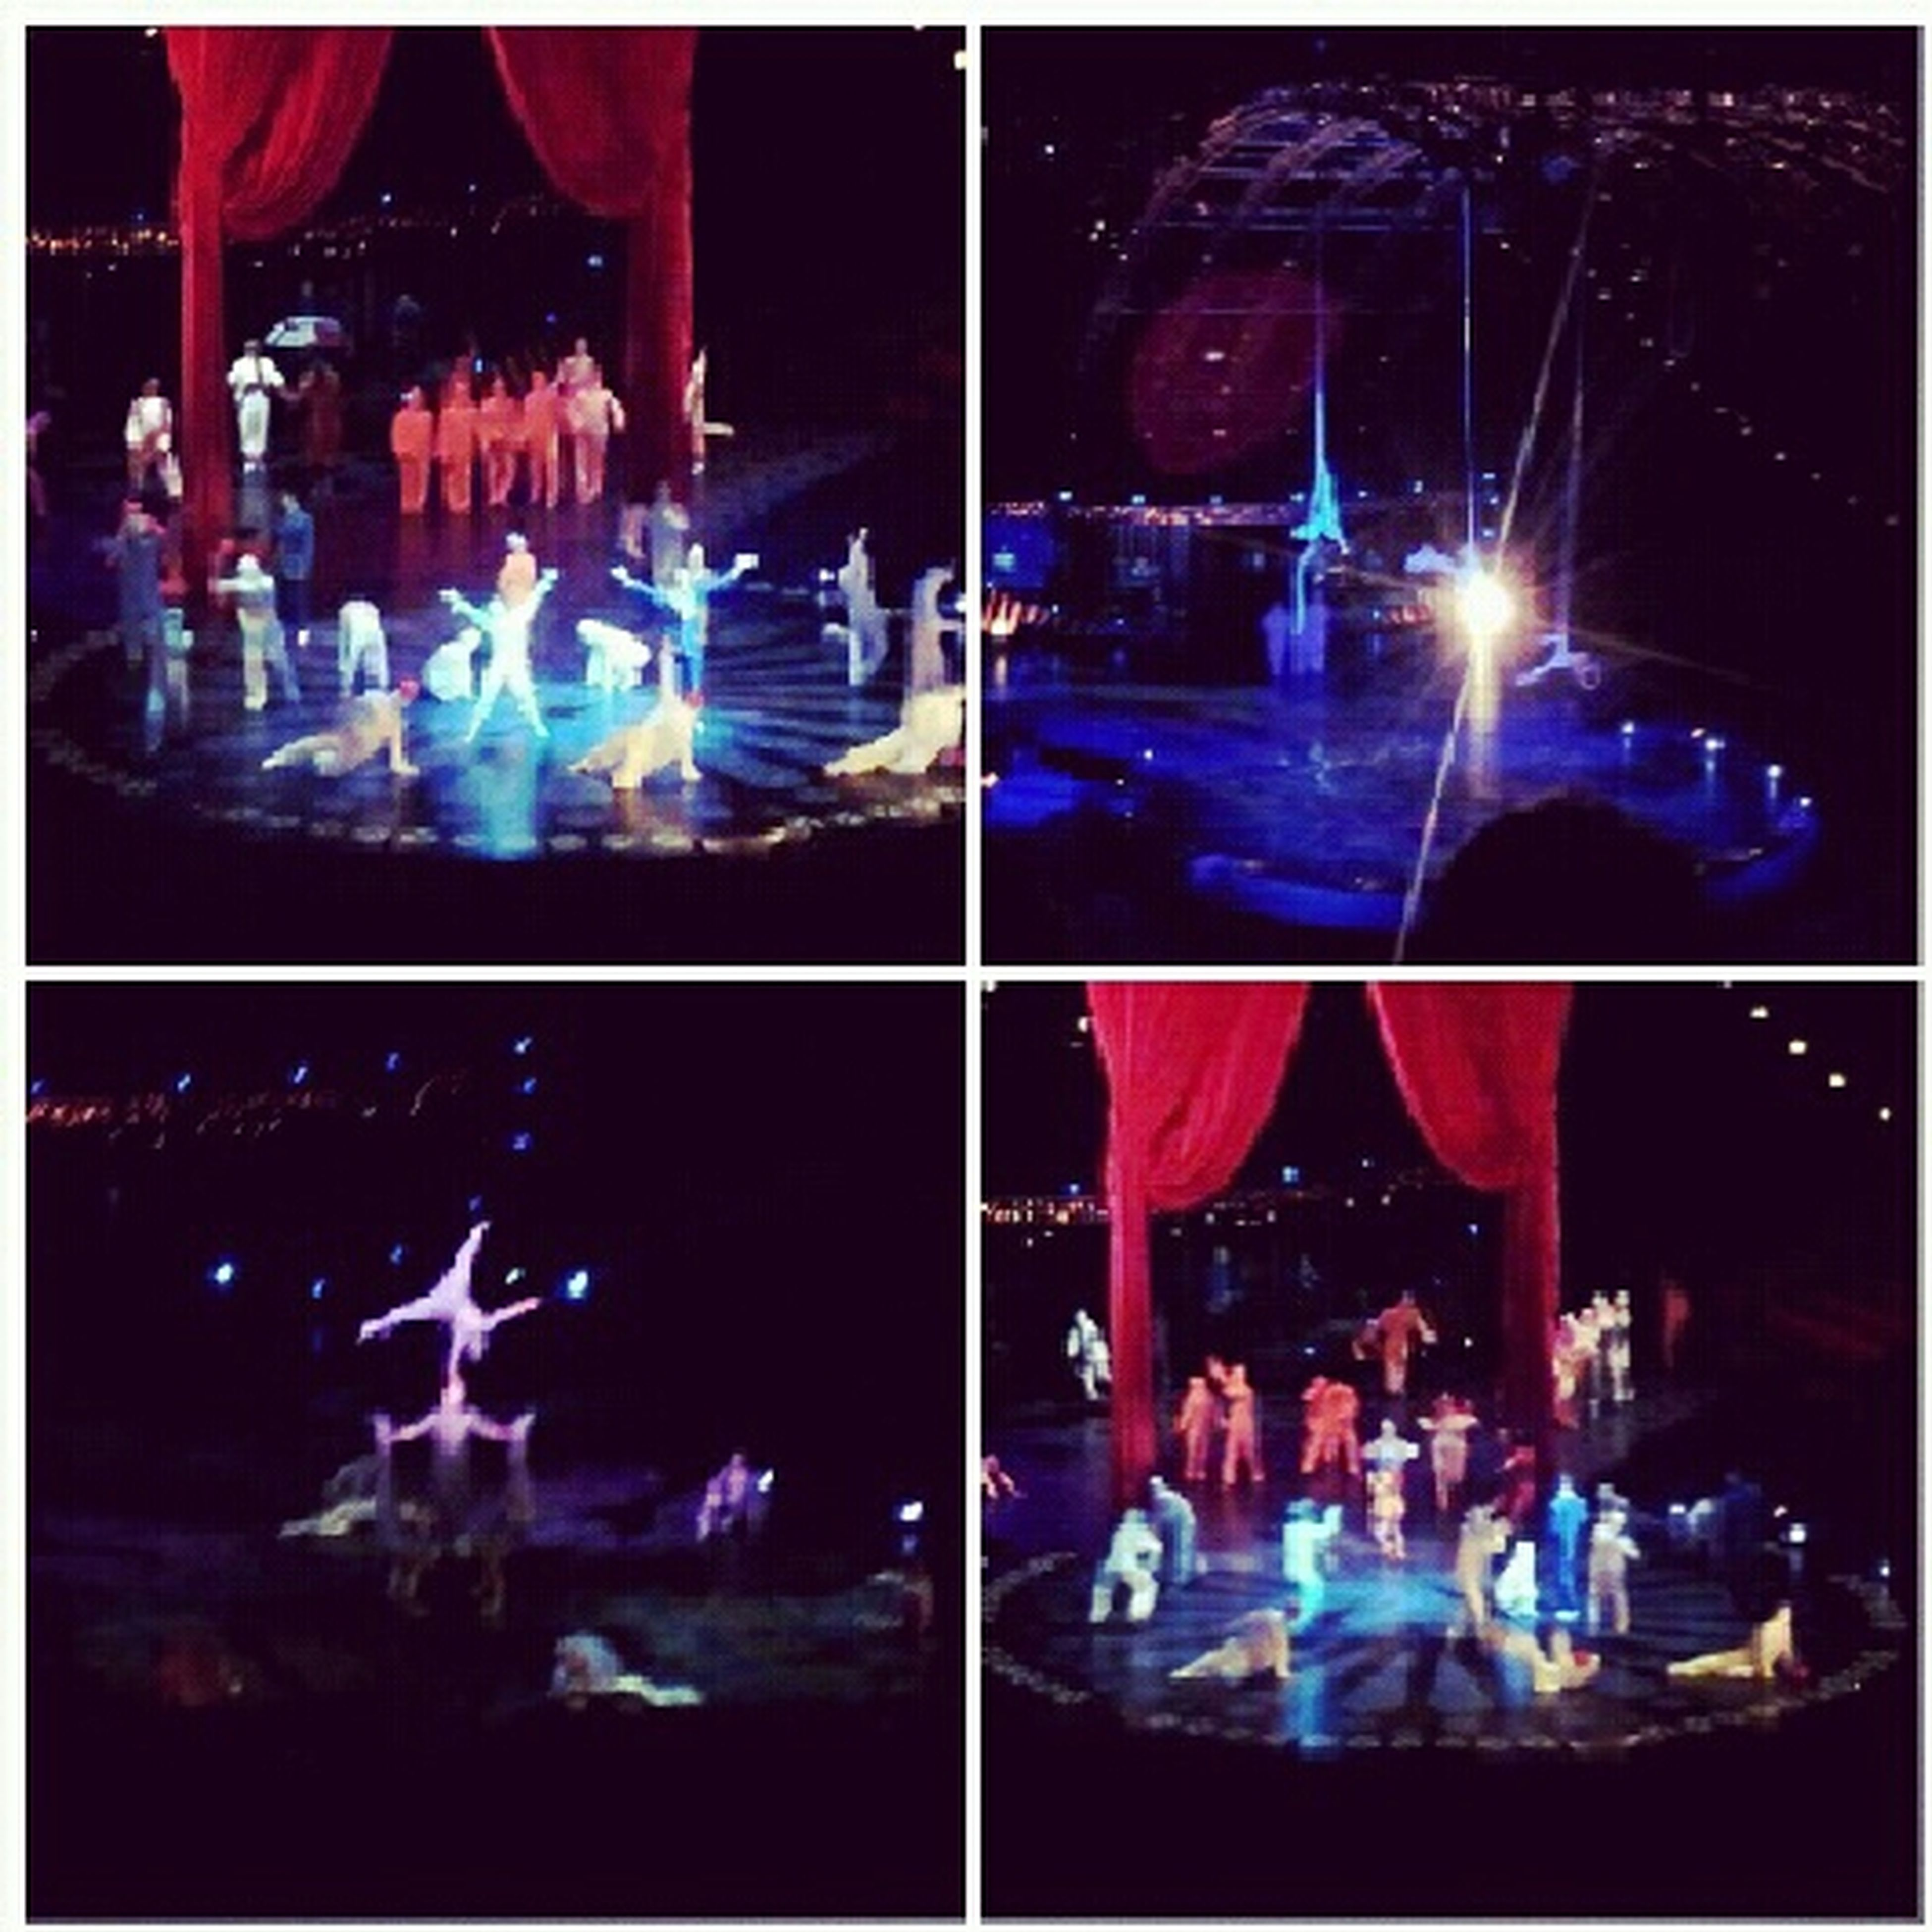 Went To Go See Cirque Du Solei! :D